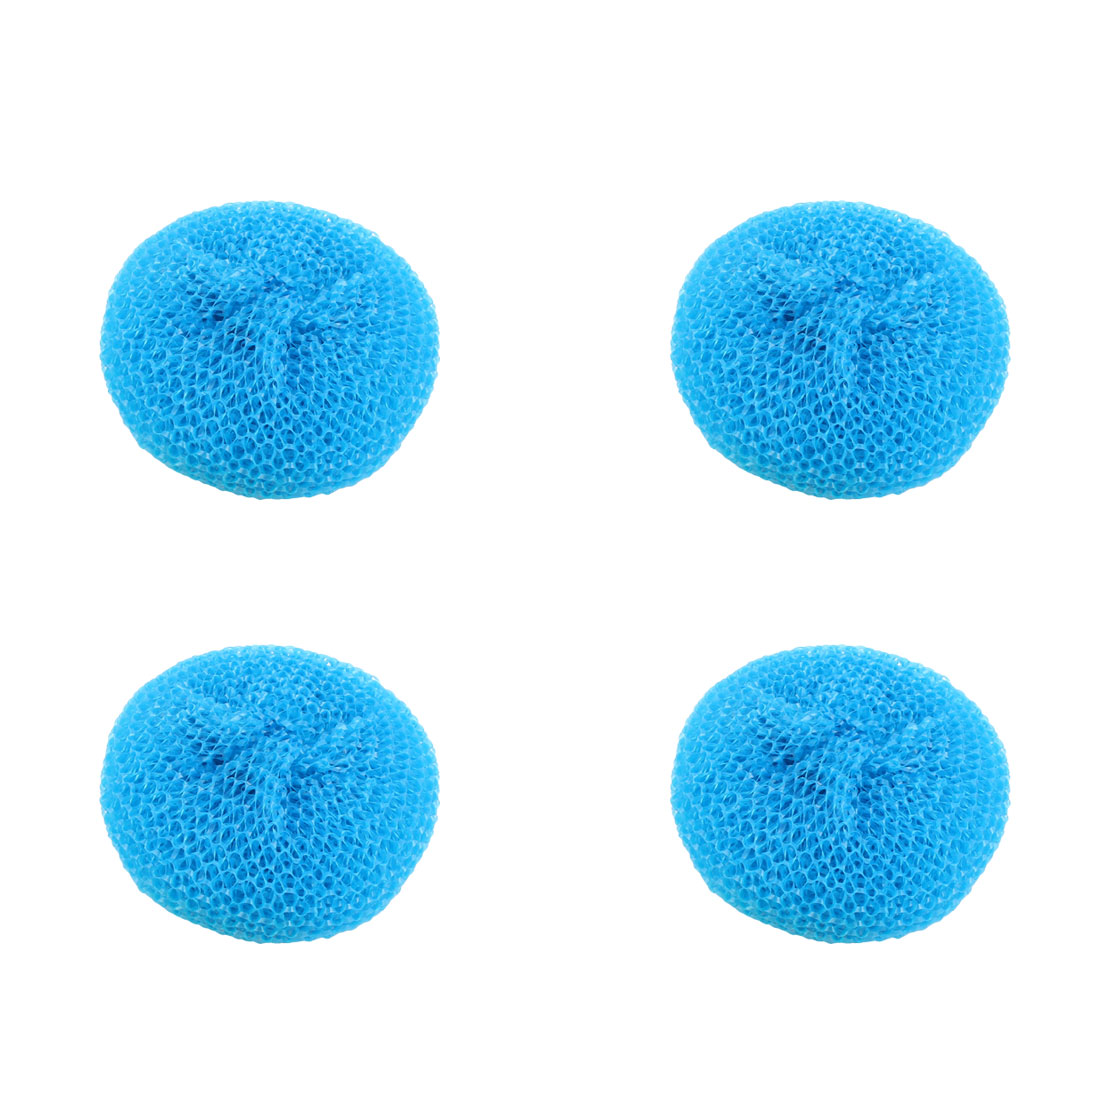 Home Kitchen Dish Pot Plastic Mesh Scouring Cleaning Scrubber Blue 4pcs